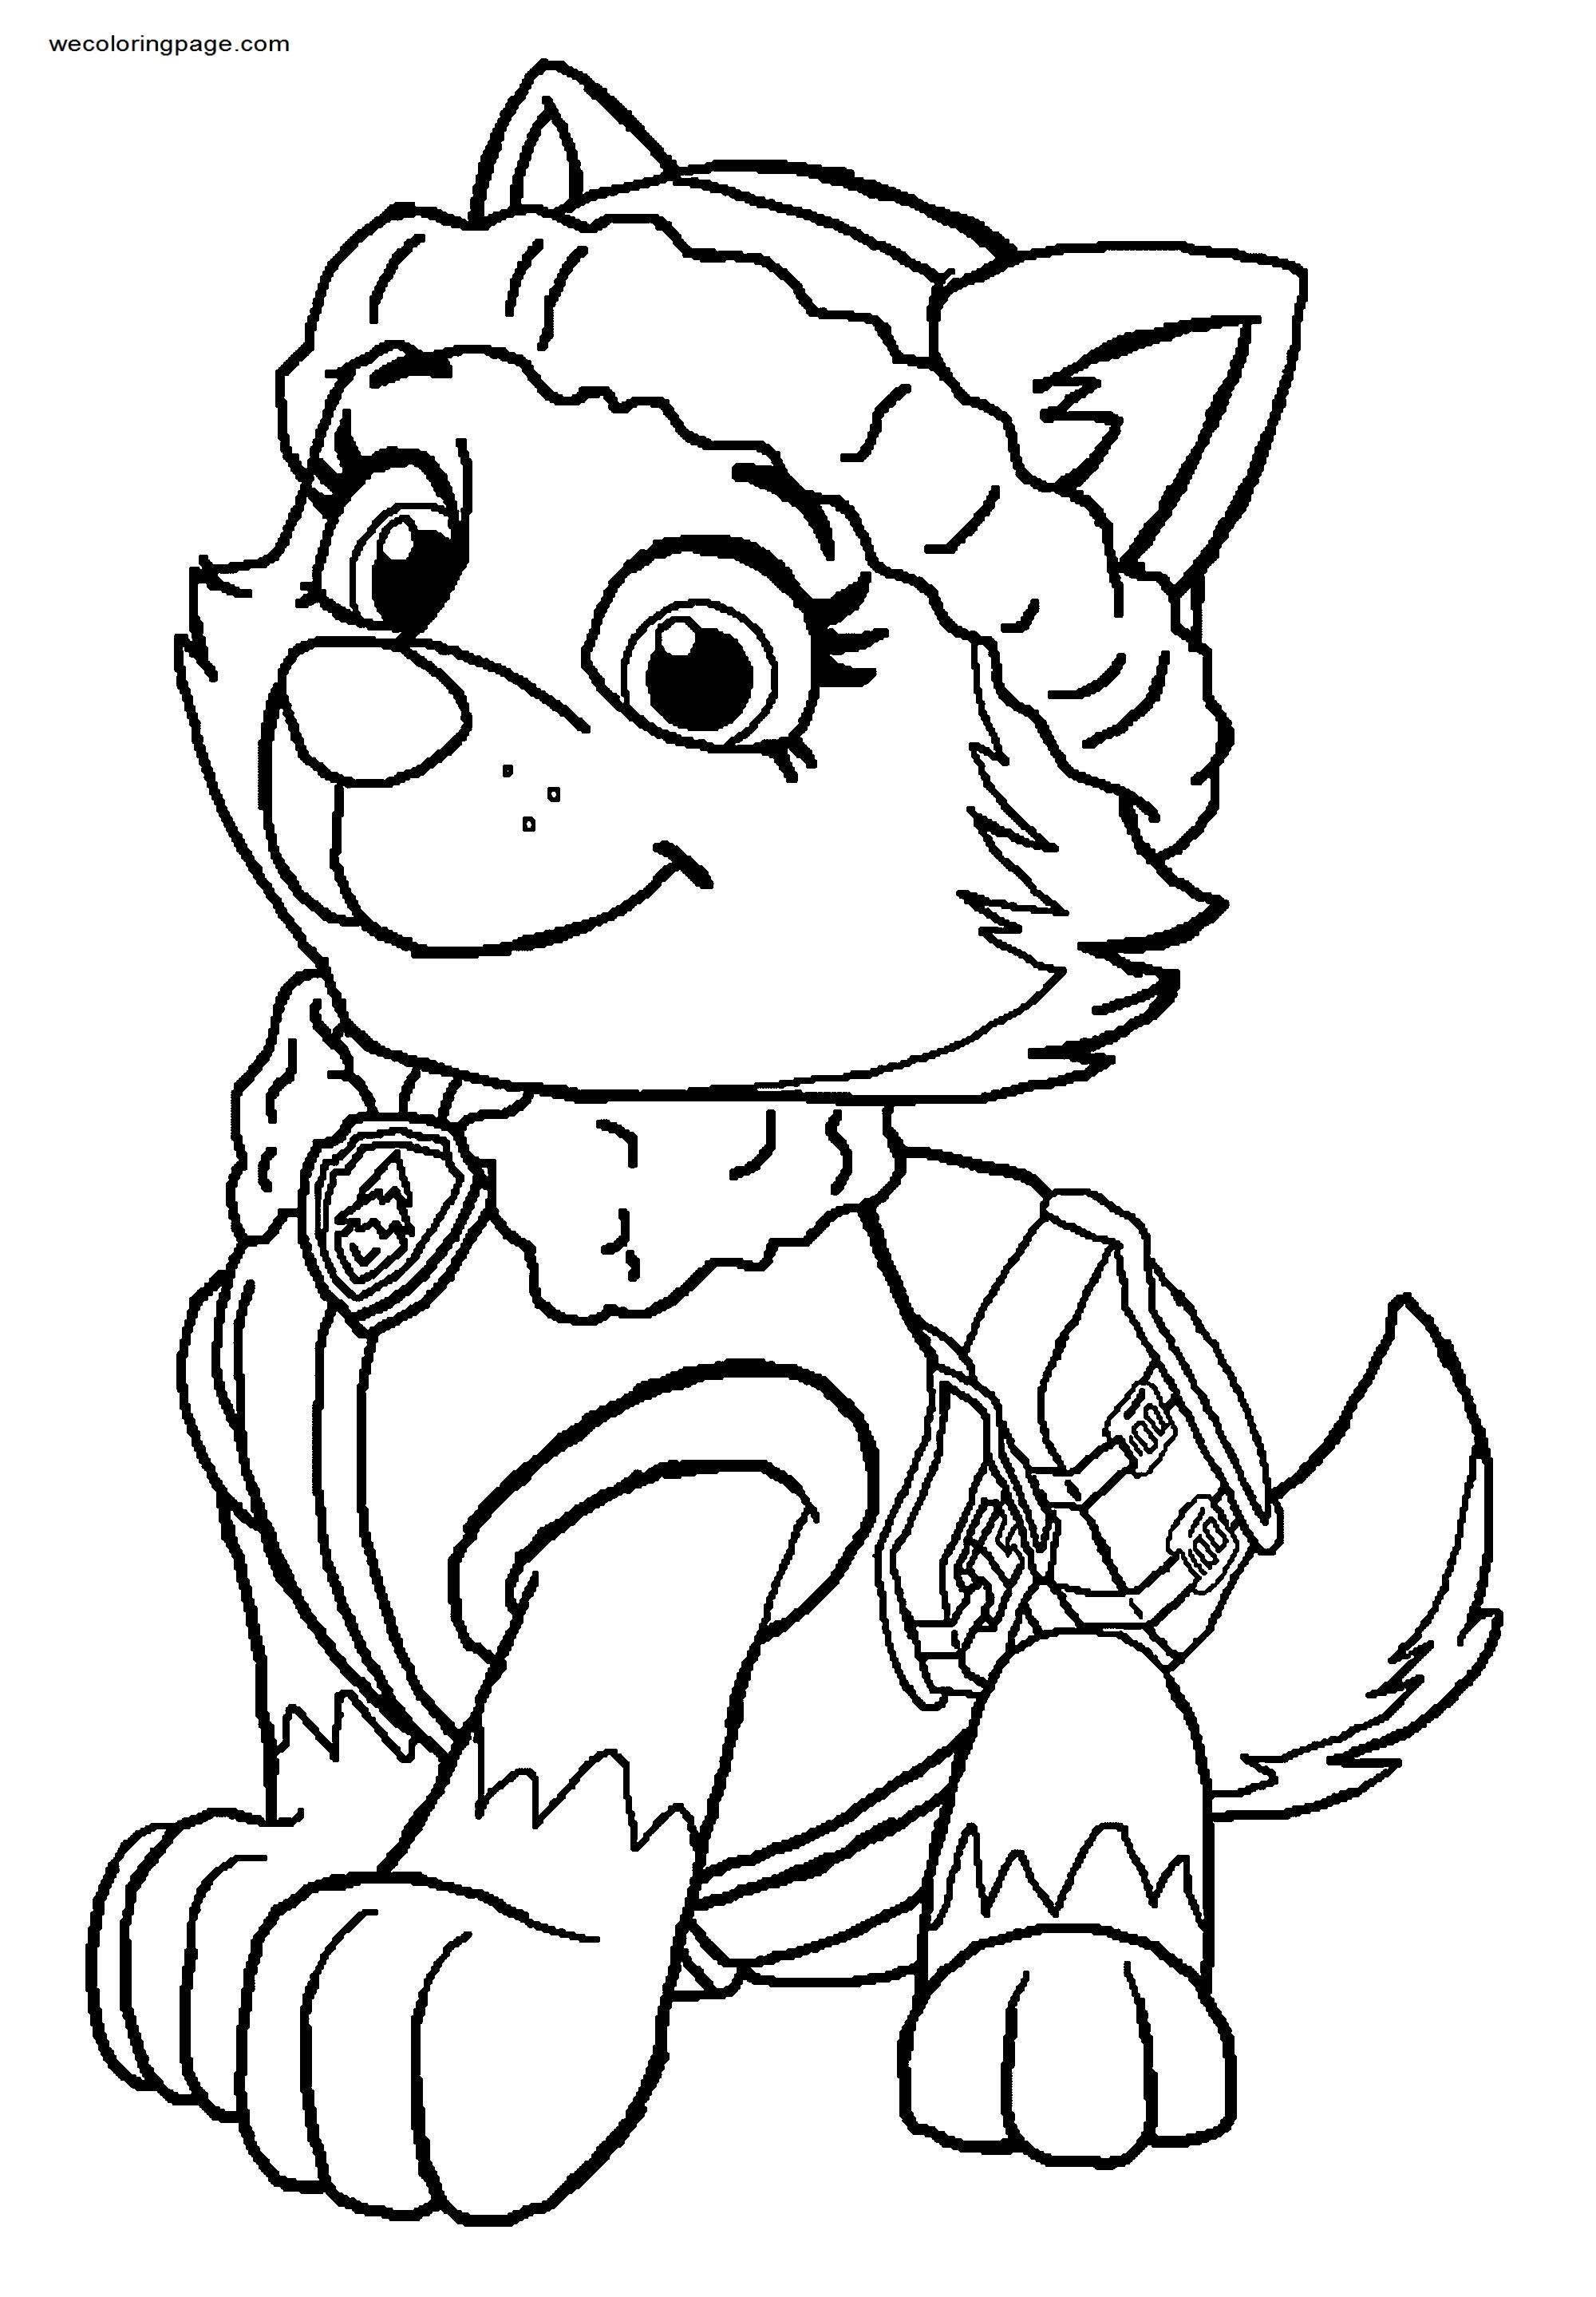 Everest Paw Patrol Dewl Coloring Page